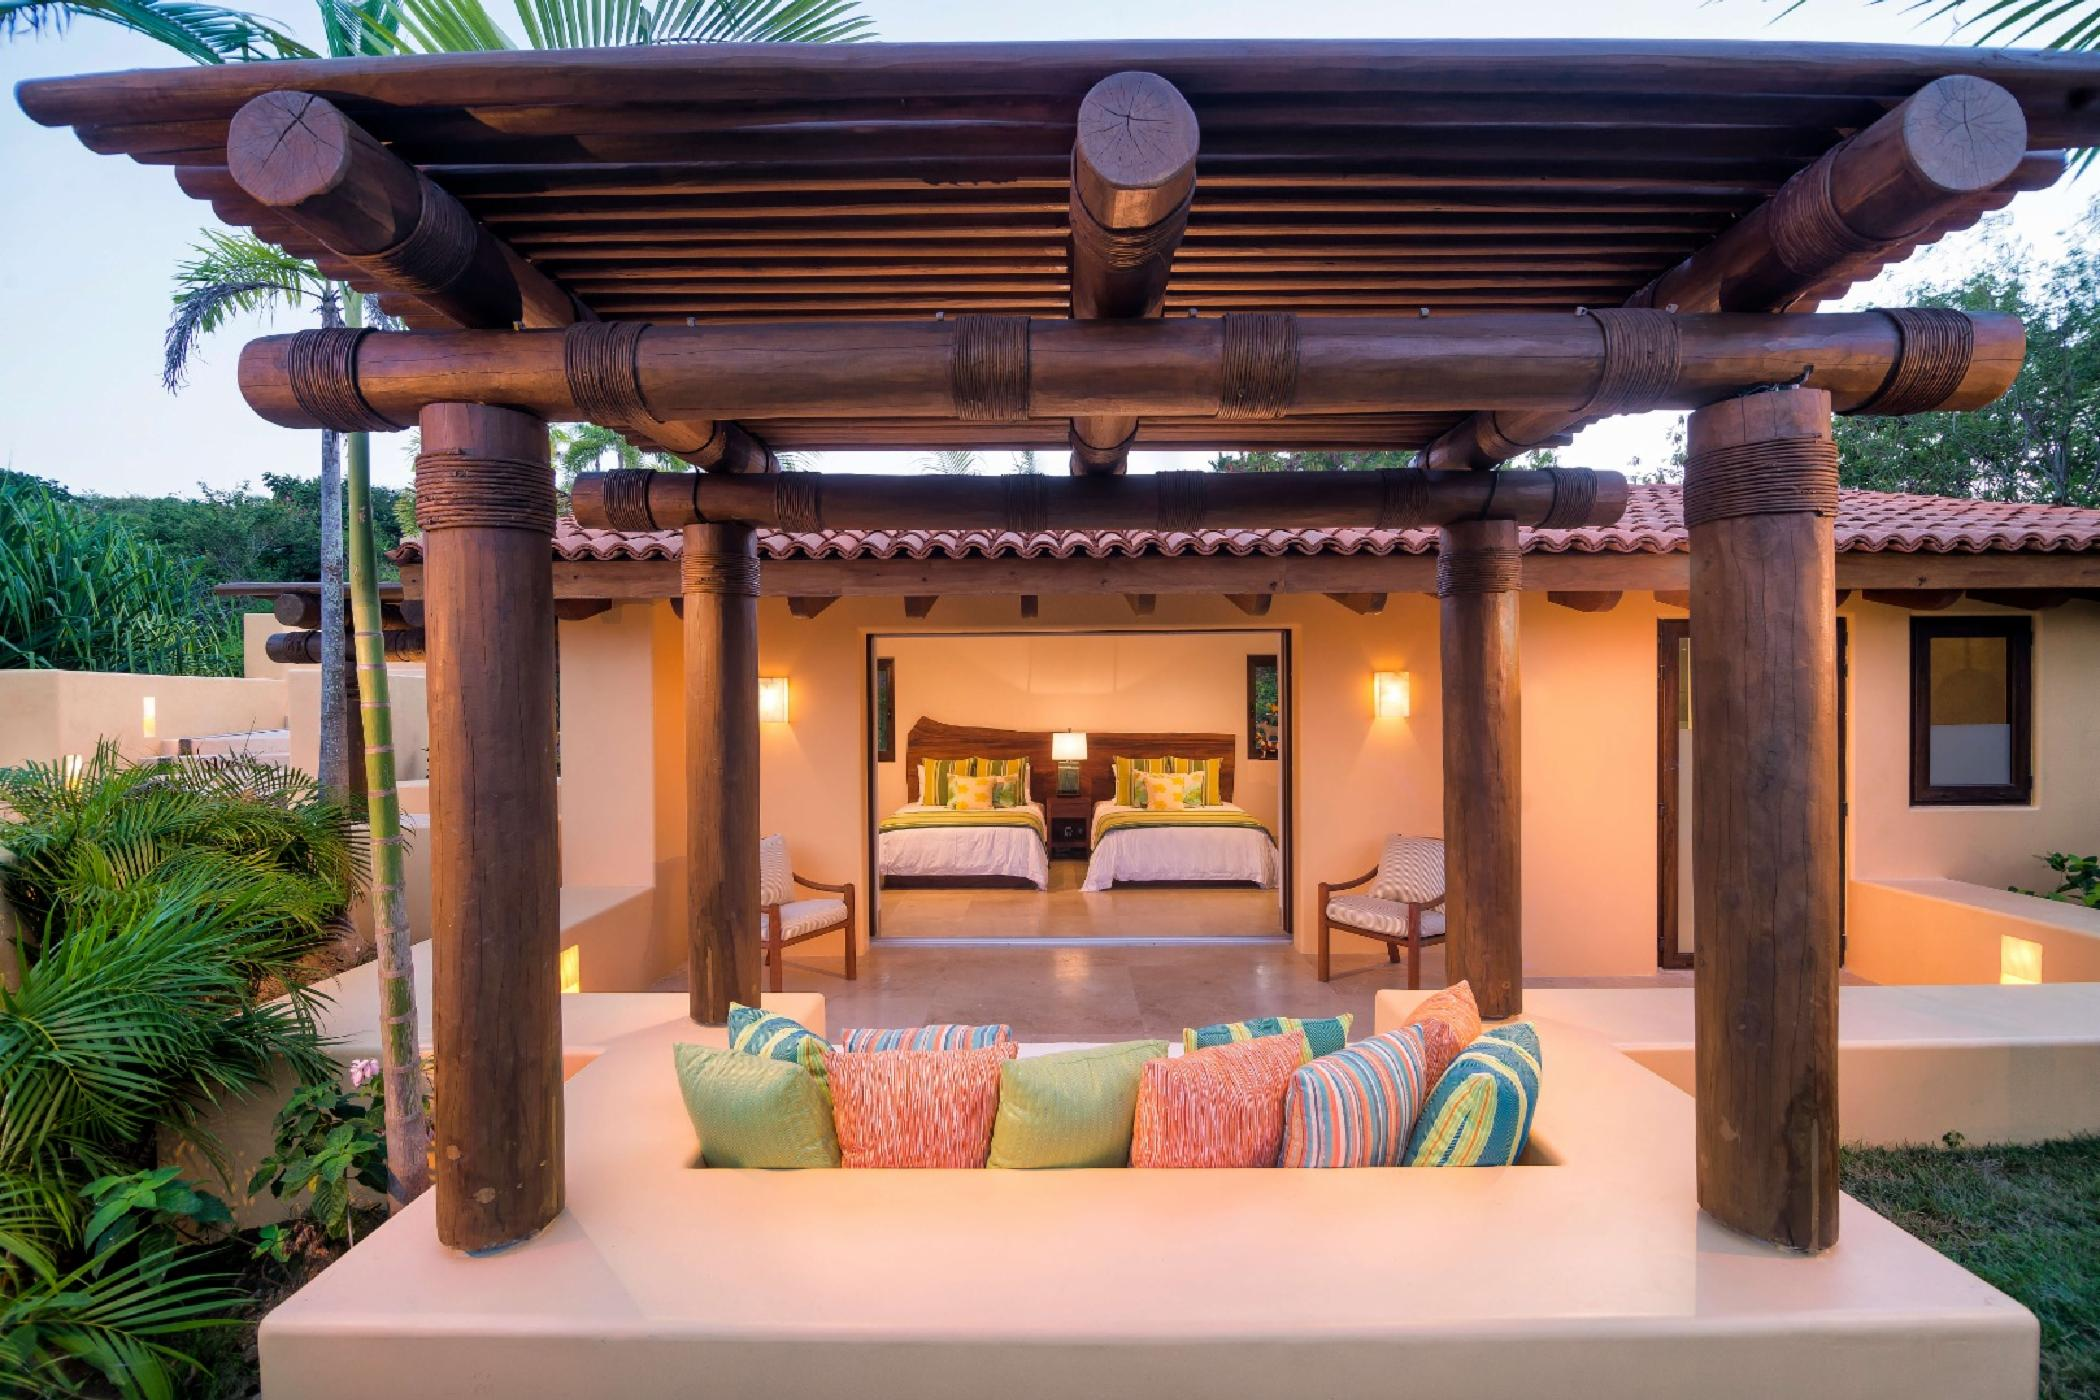 Relax in your casita garden and listen to the birdsong and waves.